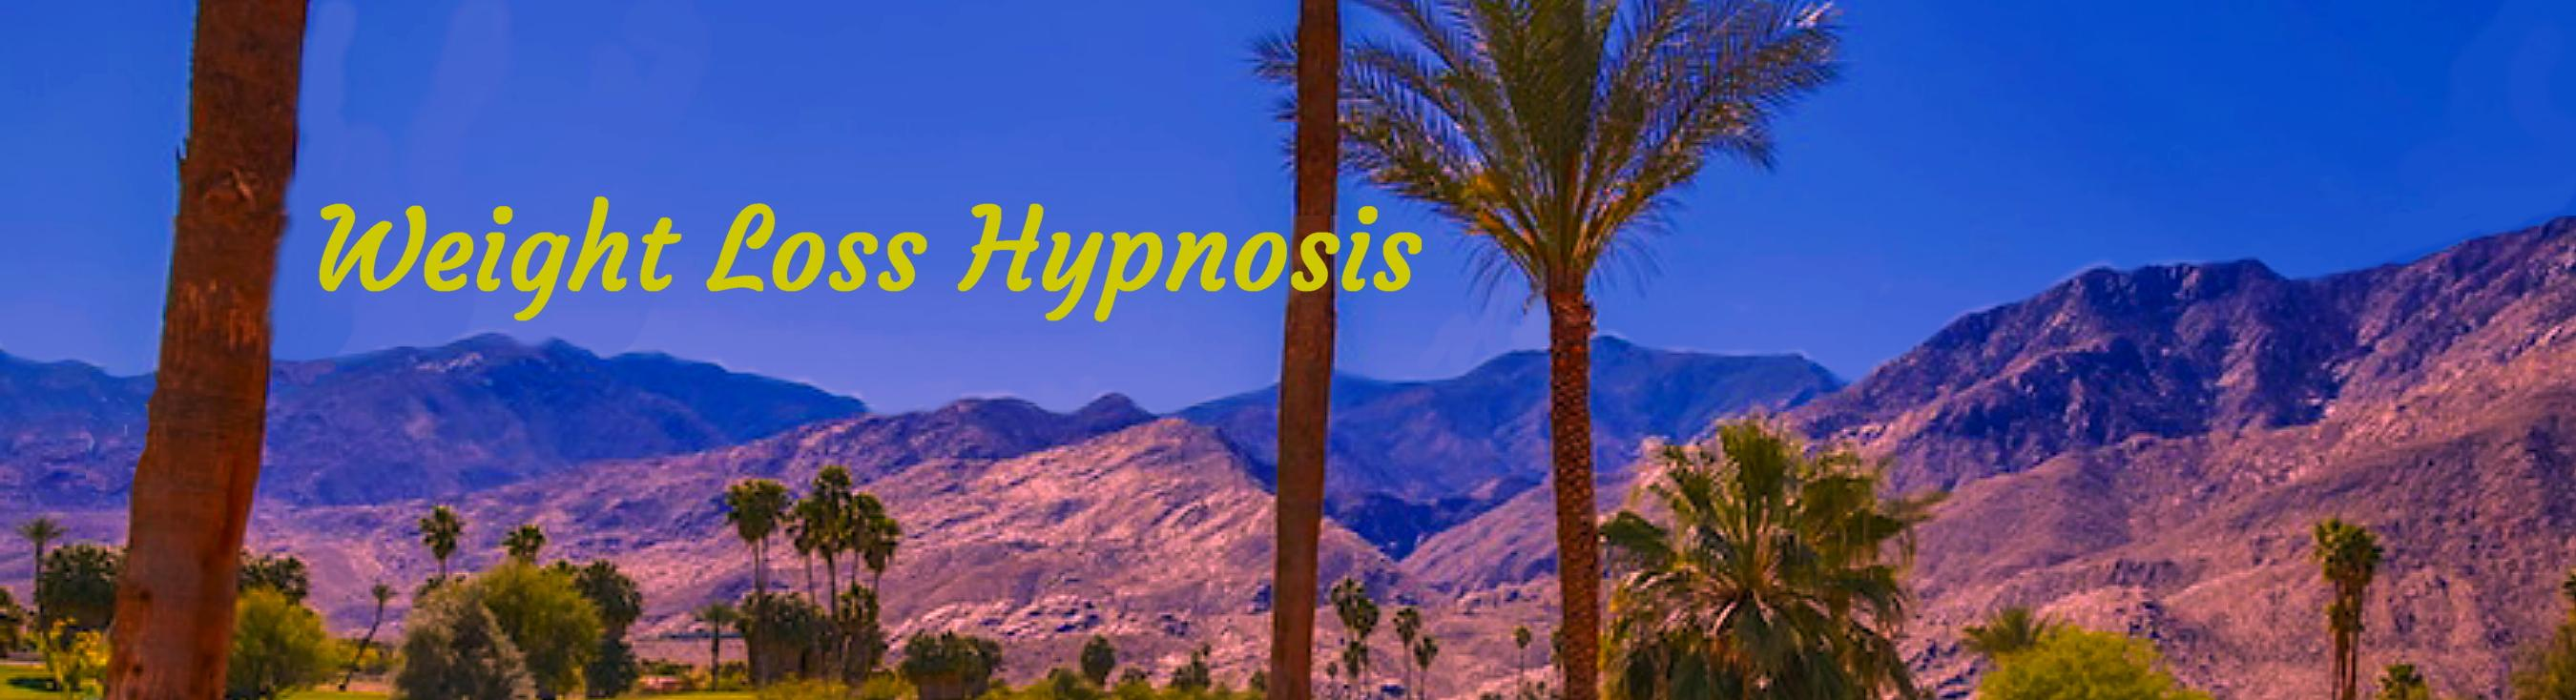 Palm Desert Weight Loss Hypnosis